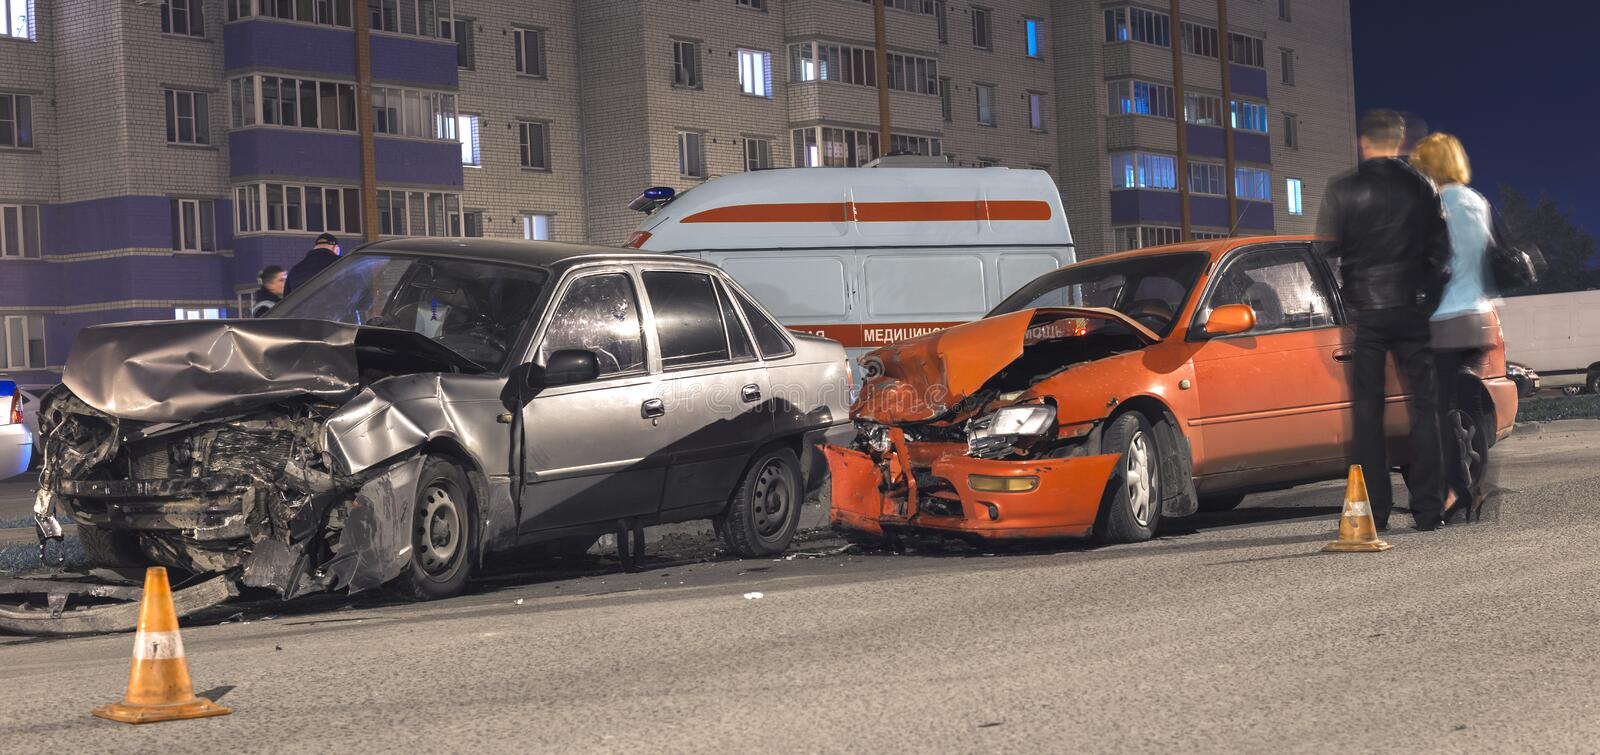 Night car accident stock photography